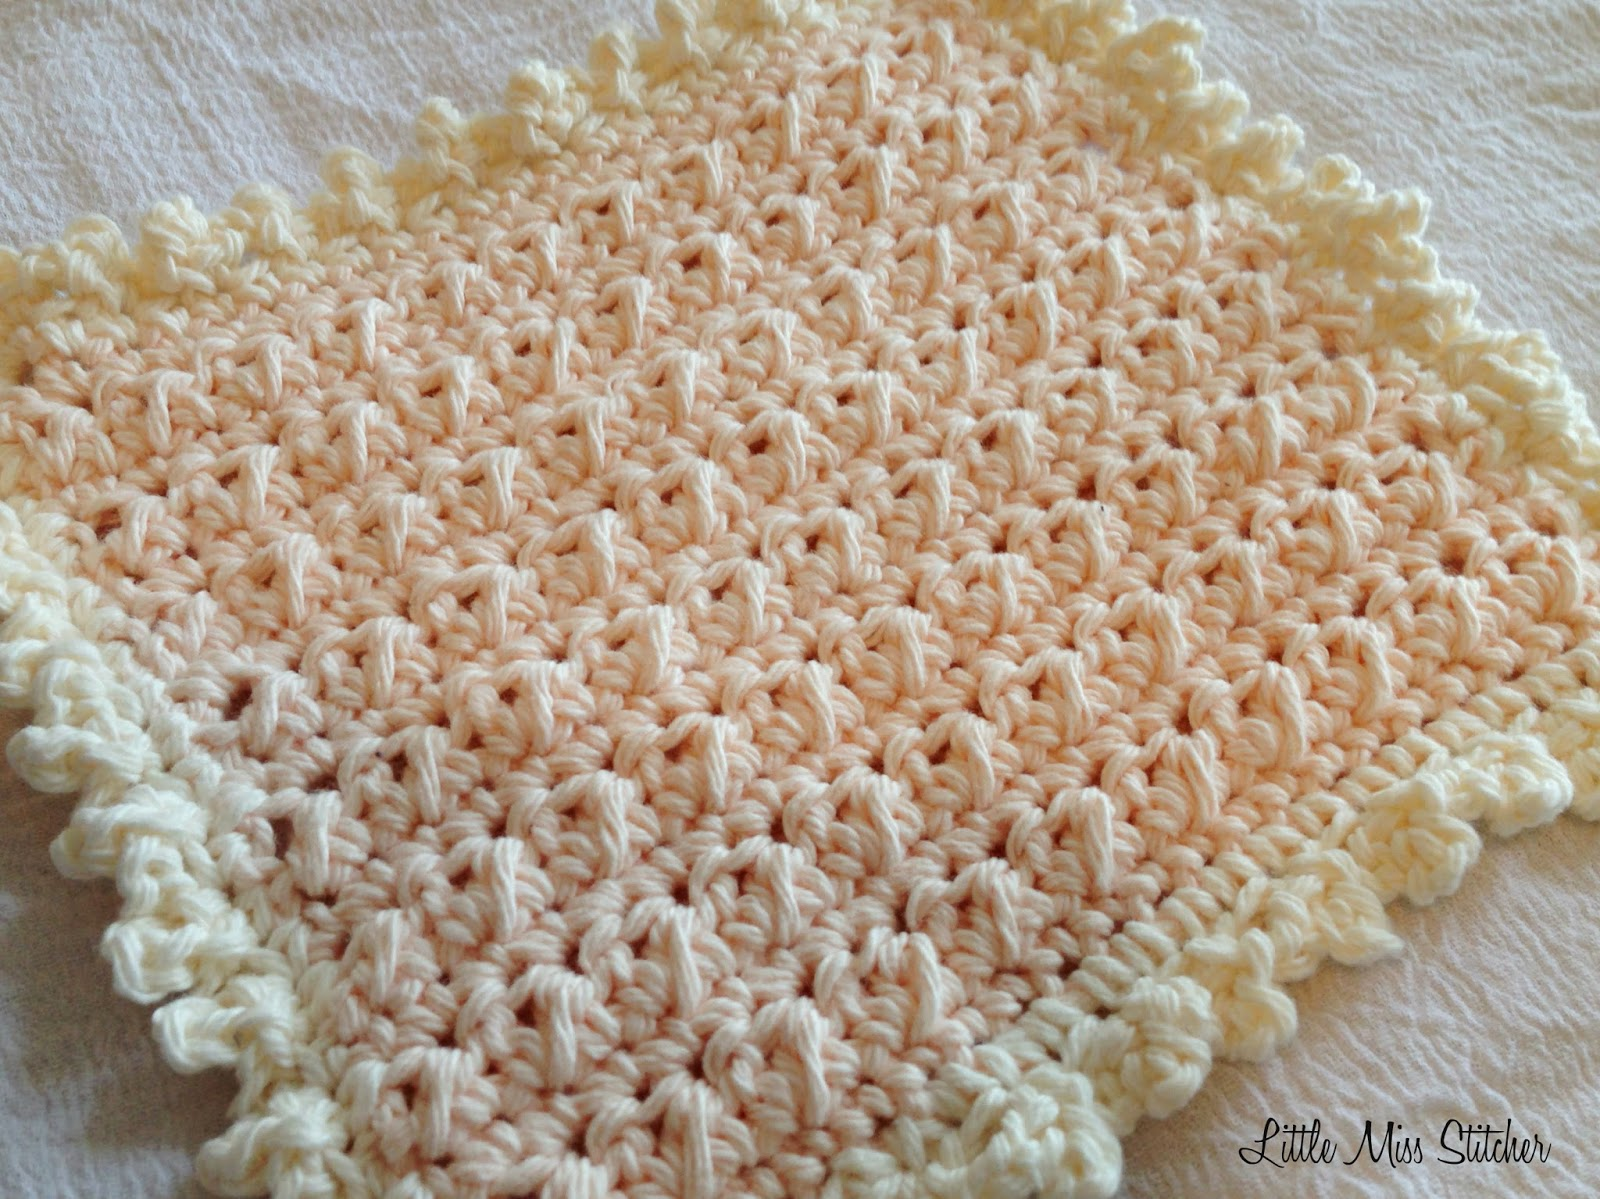 Little Miss Stitcher: 5 Free Crochet Dishcloth Patterns